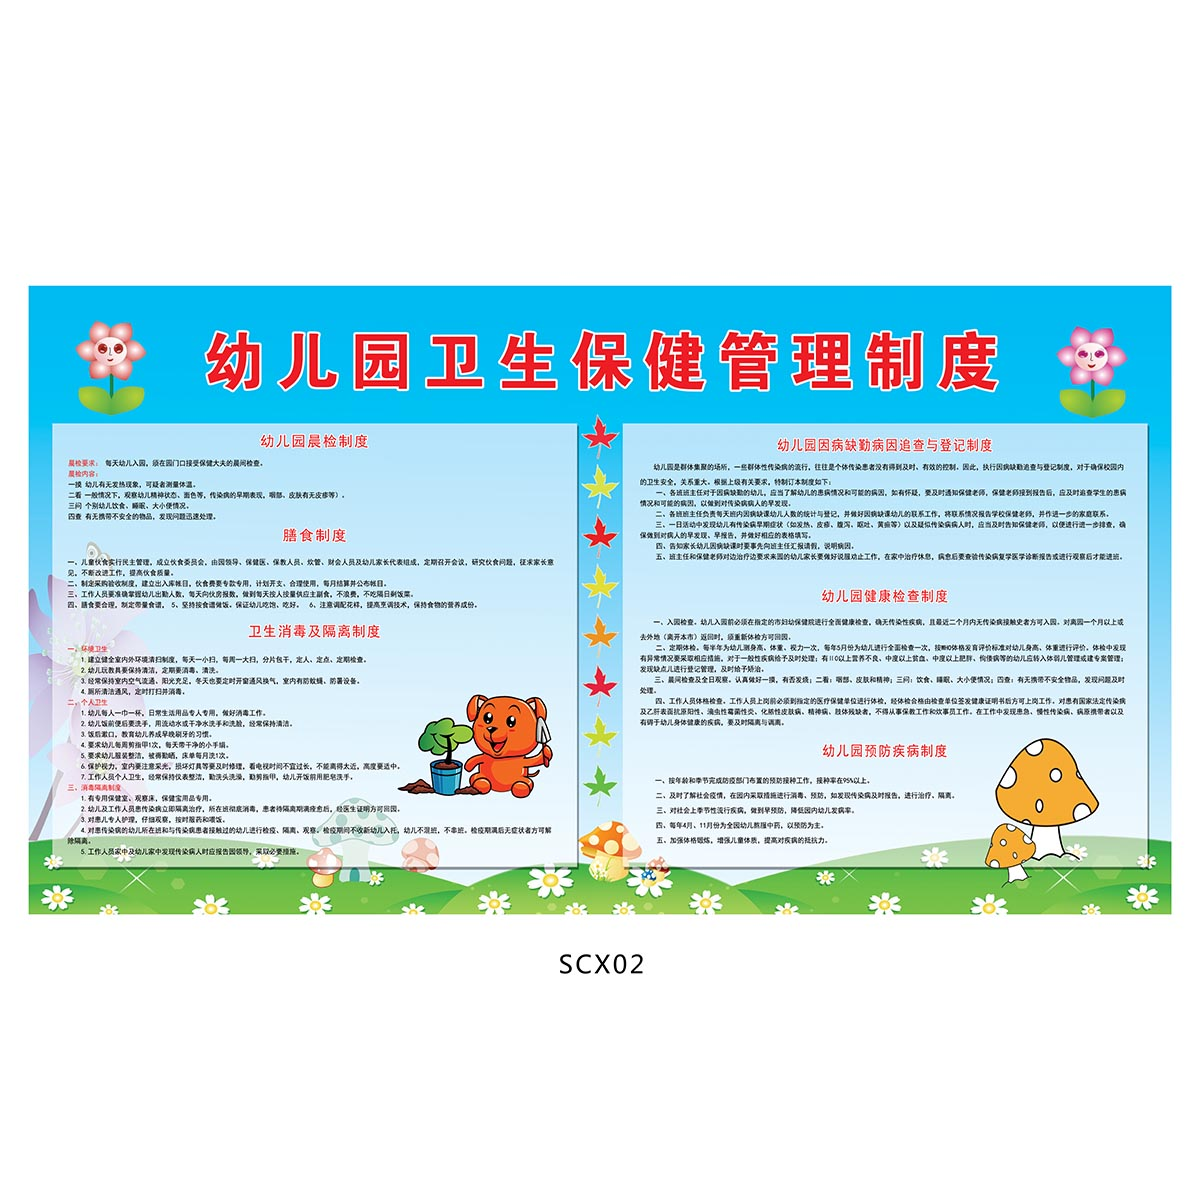 Kindergarten health care management system / regulations Wall Stickers / wall charts / health room posters / stickers scx02